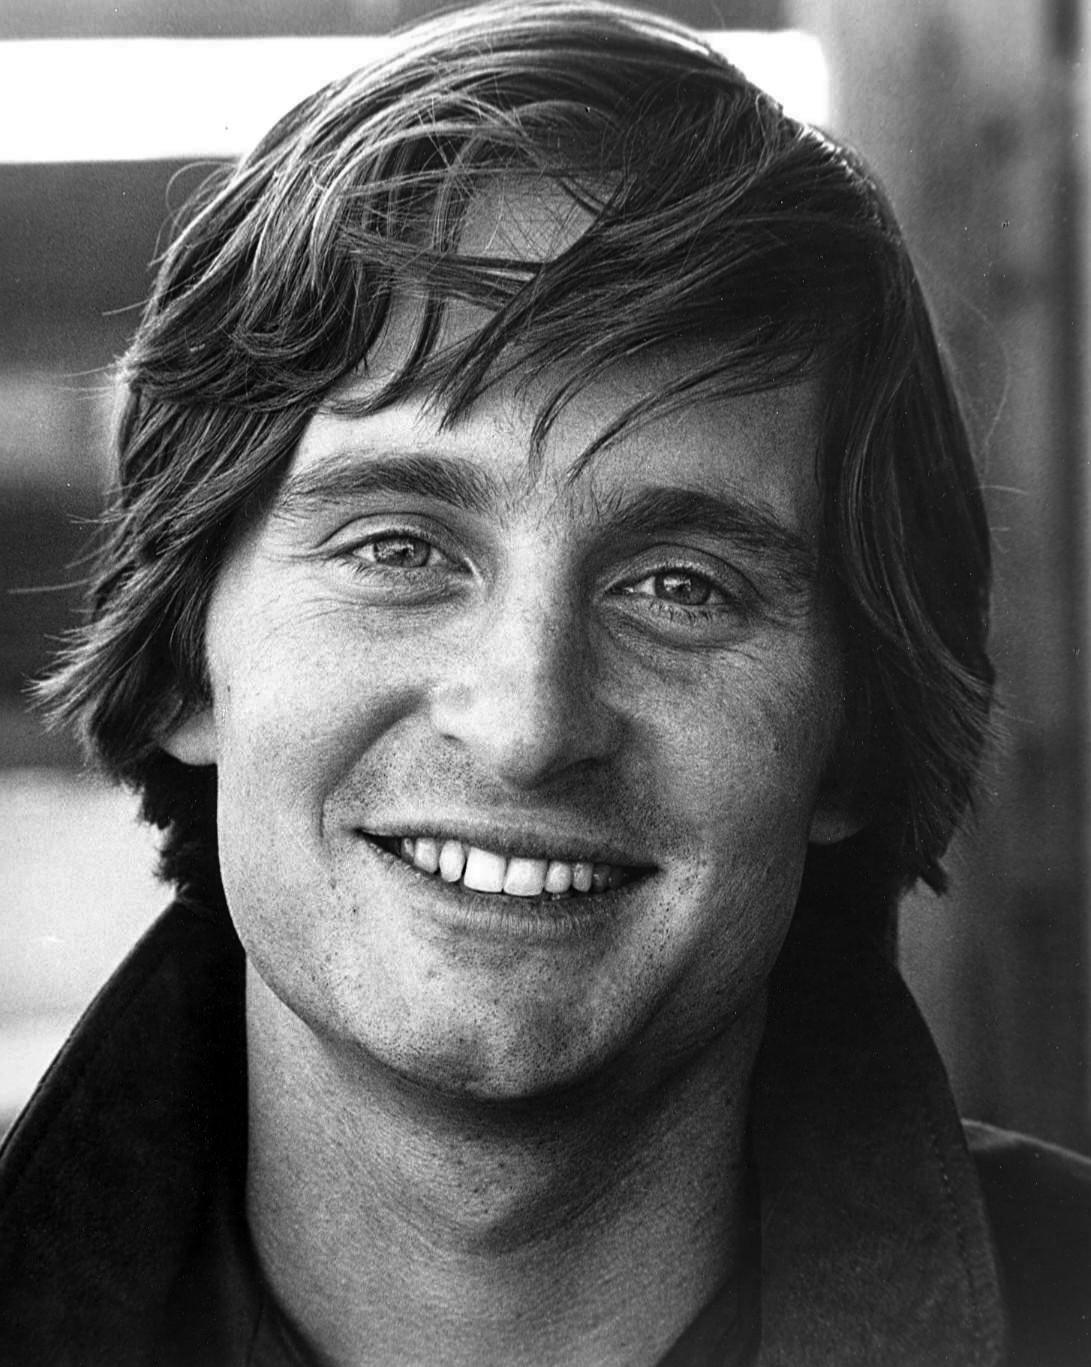 Description Michael Douglas headshot 1969.JPG